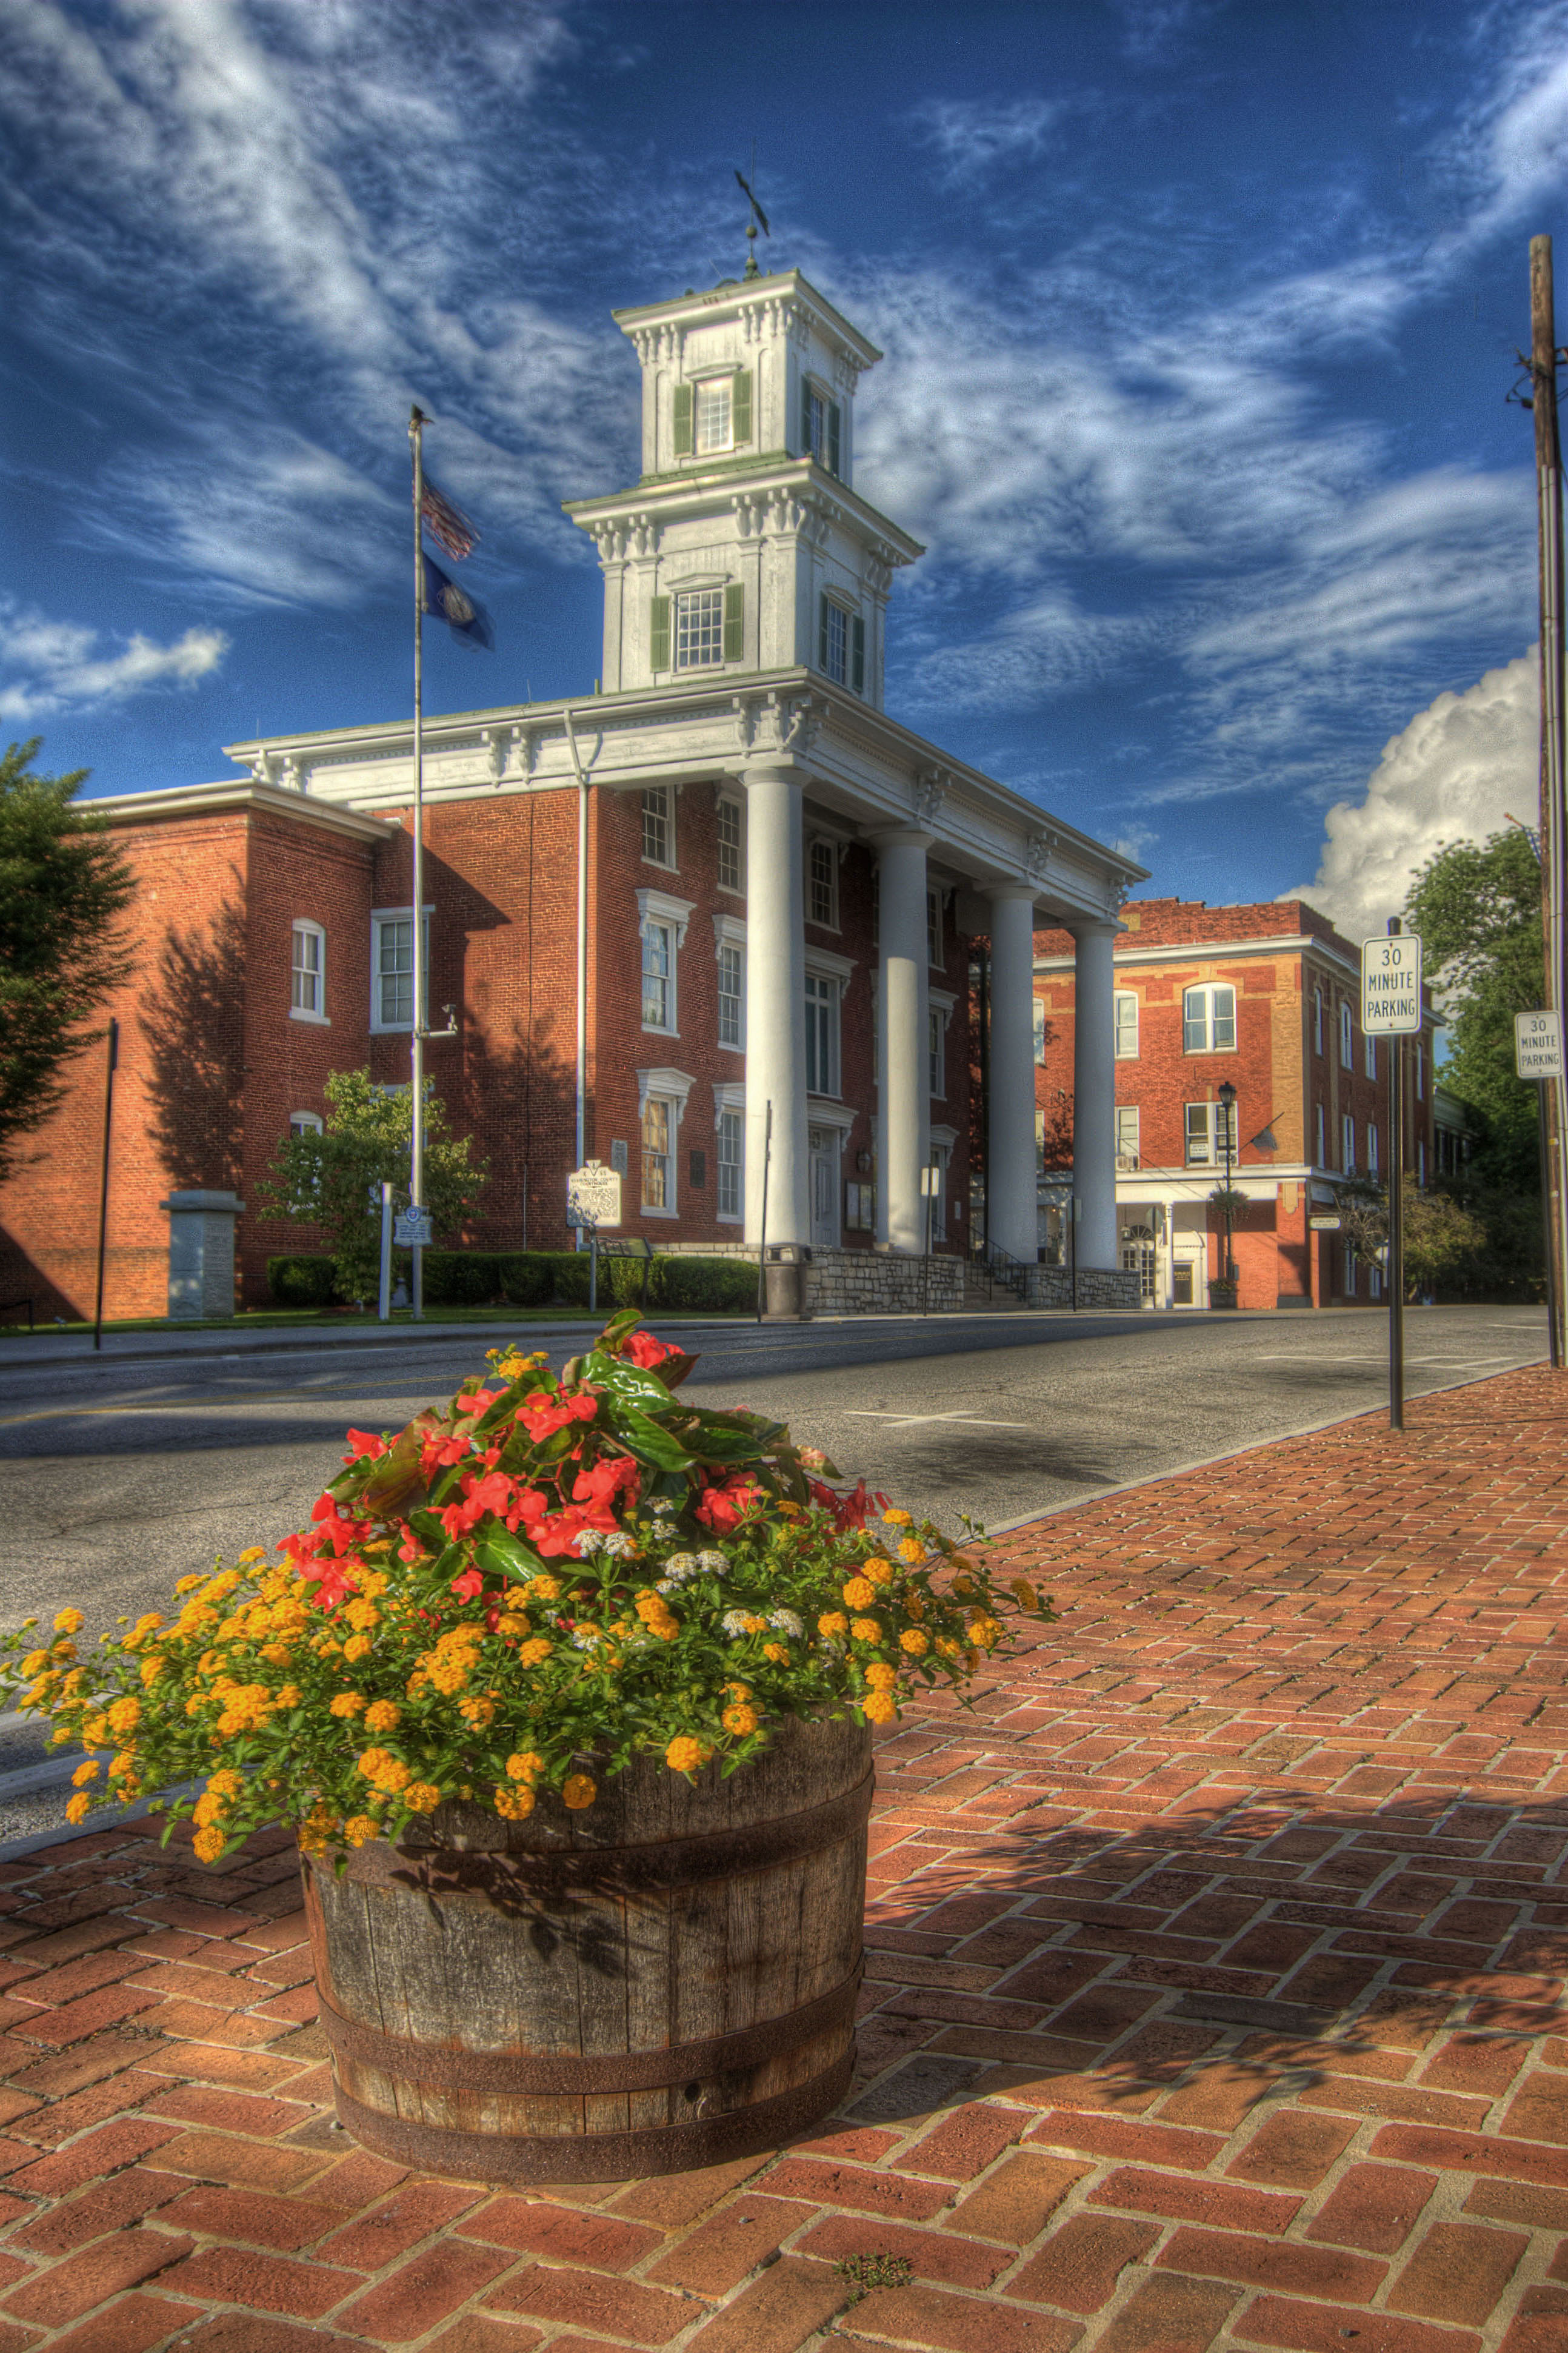 The Courthouse on Main Street in Abingdon, VA